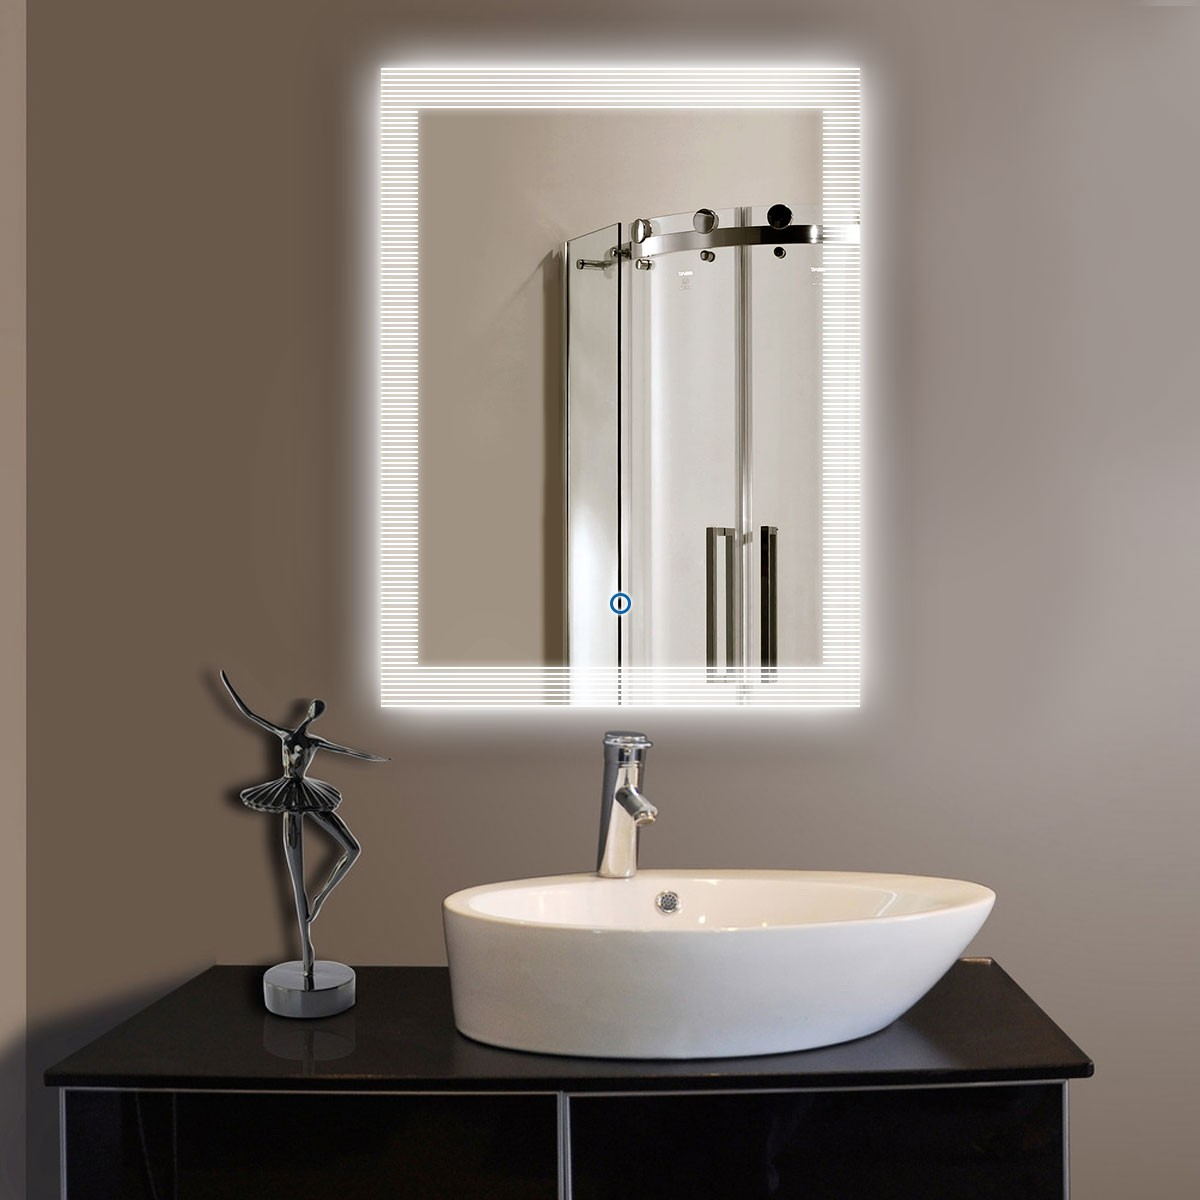 24  x 32 In Vertical LED Bathroom Mirror with Touch Button (DK-OD-N001)